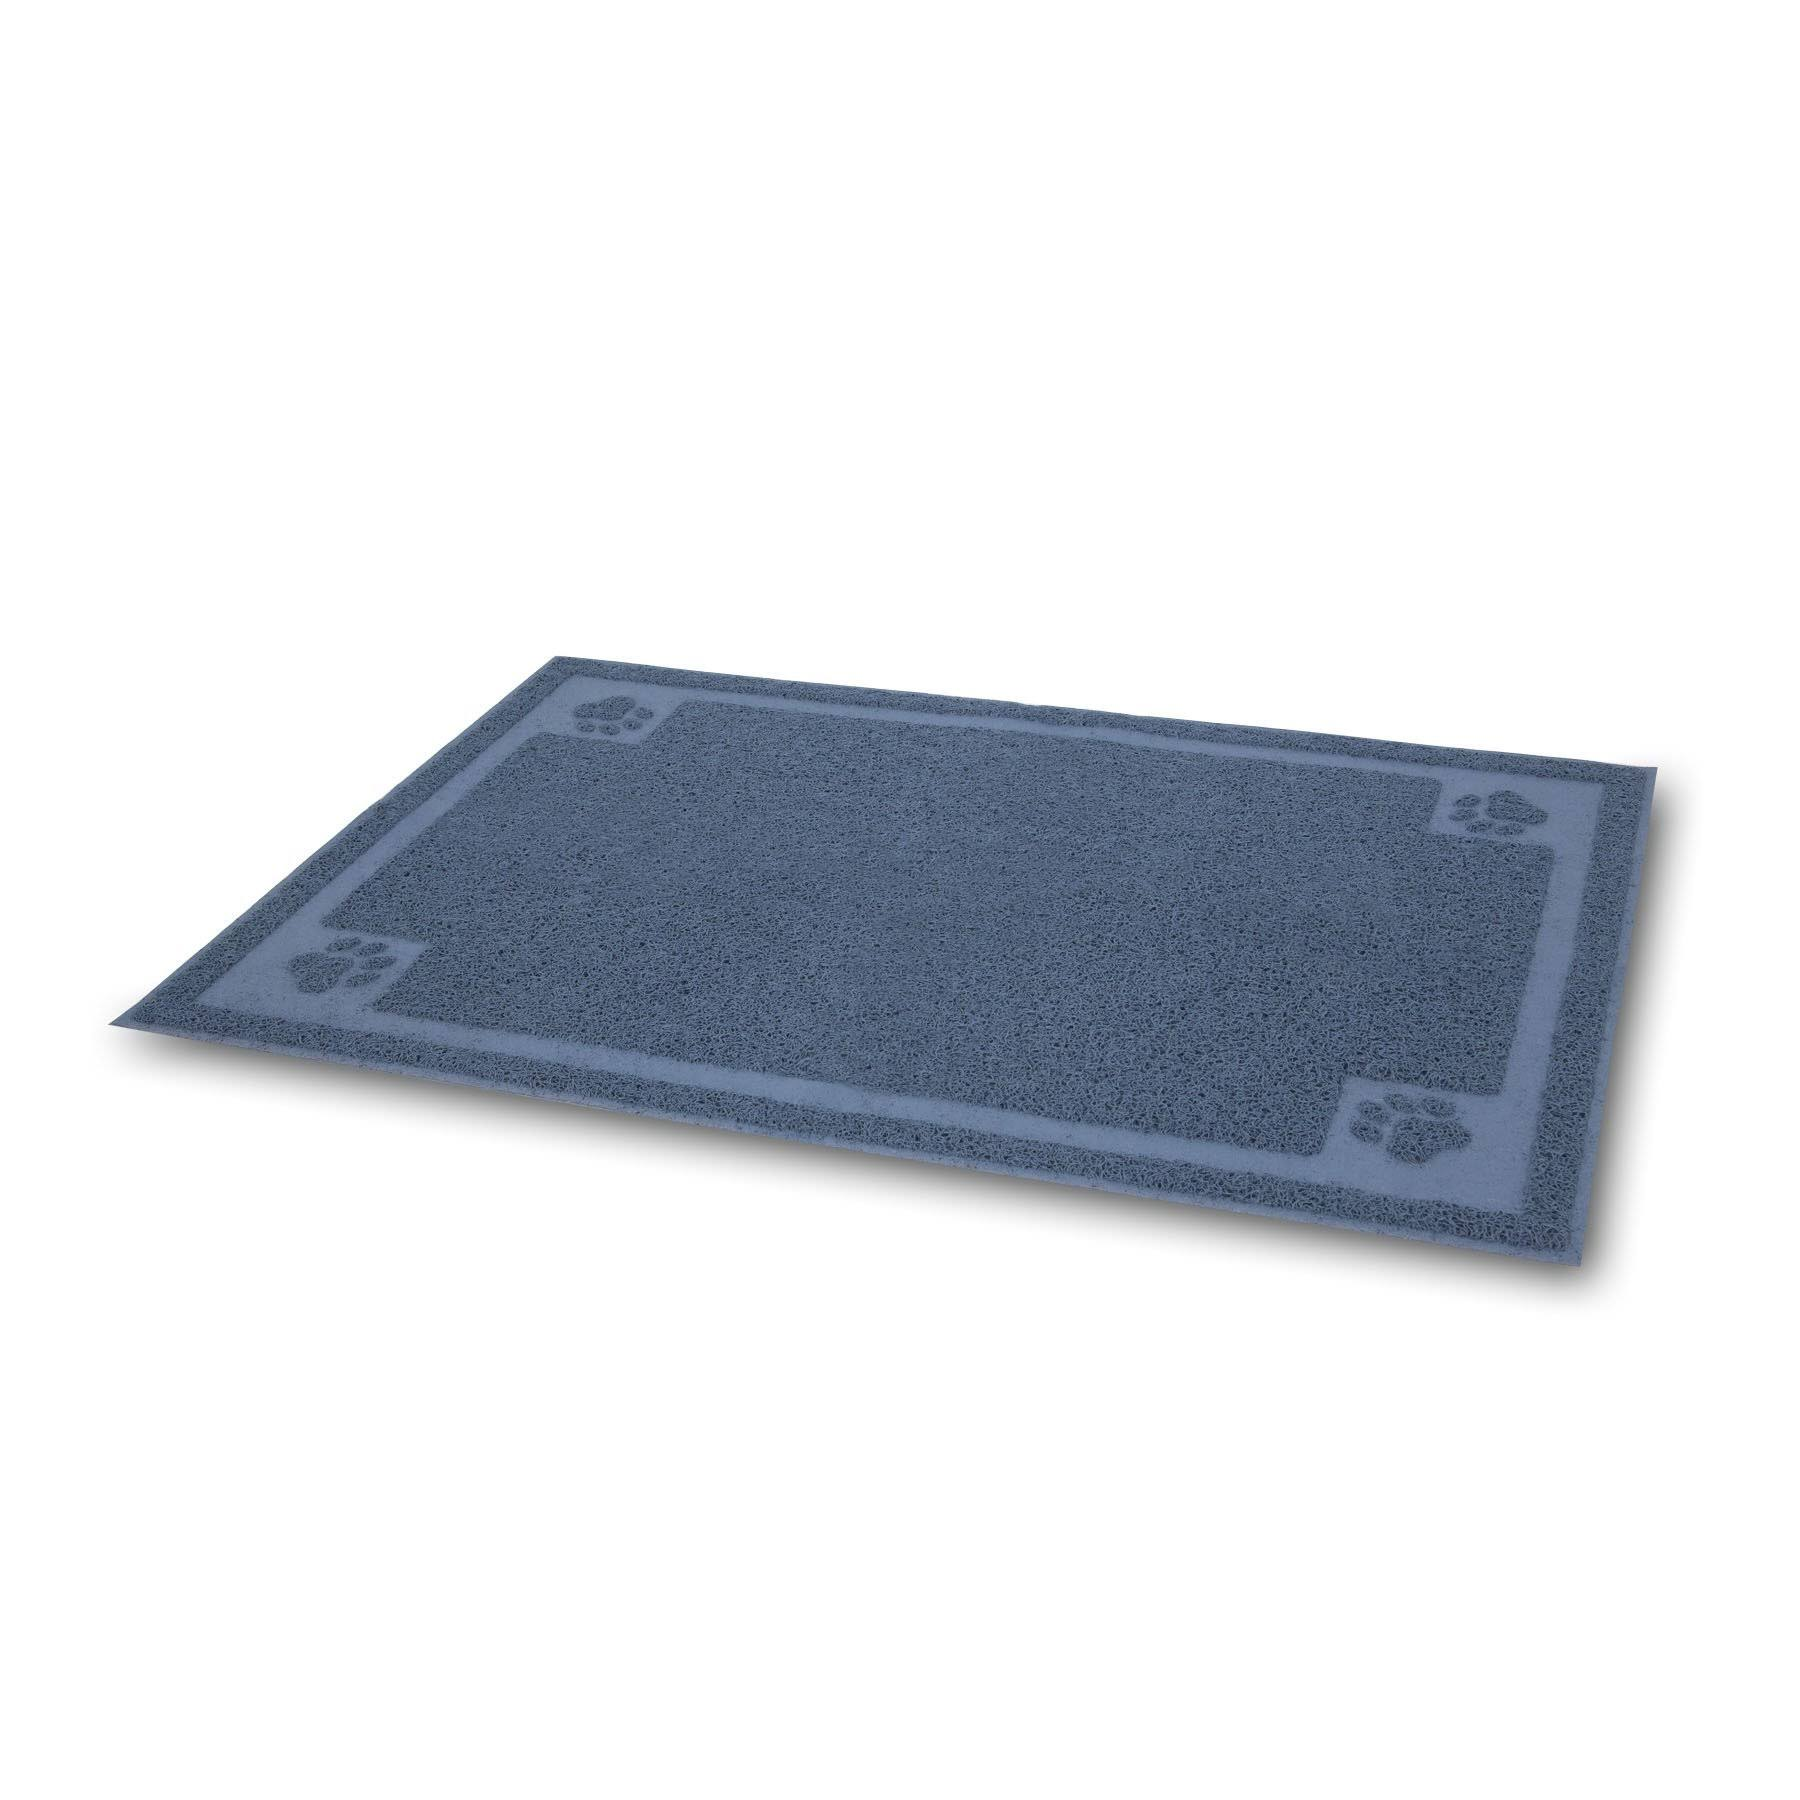 Petmate Litter Catcher Mat - Ice Blue, Large